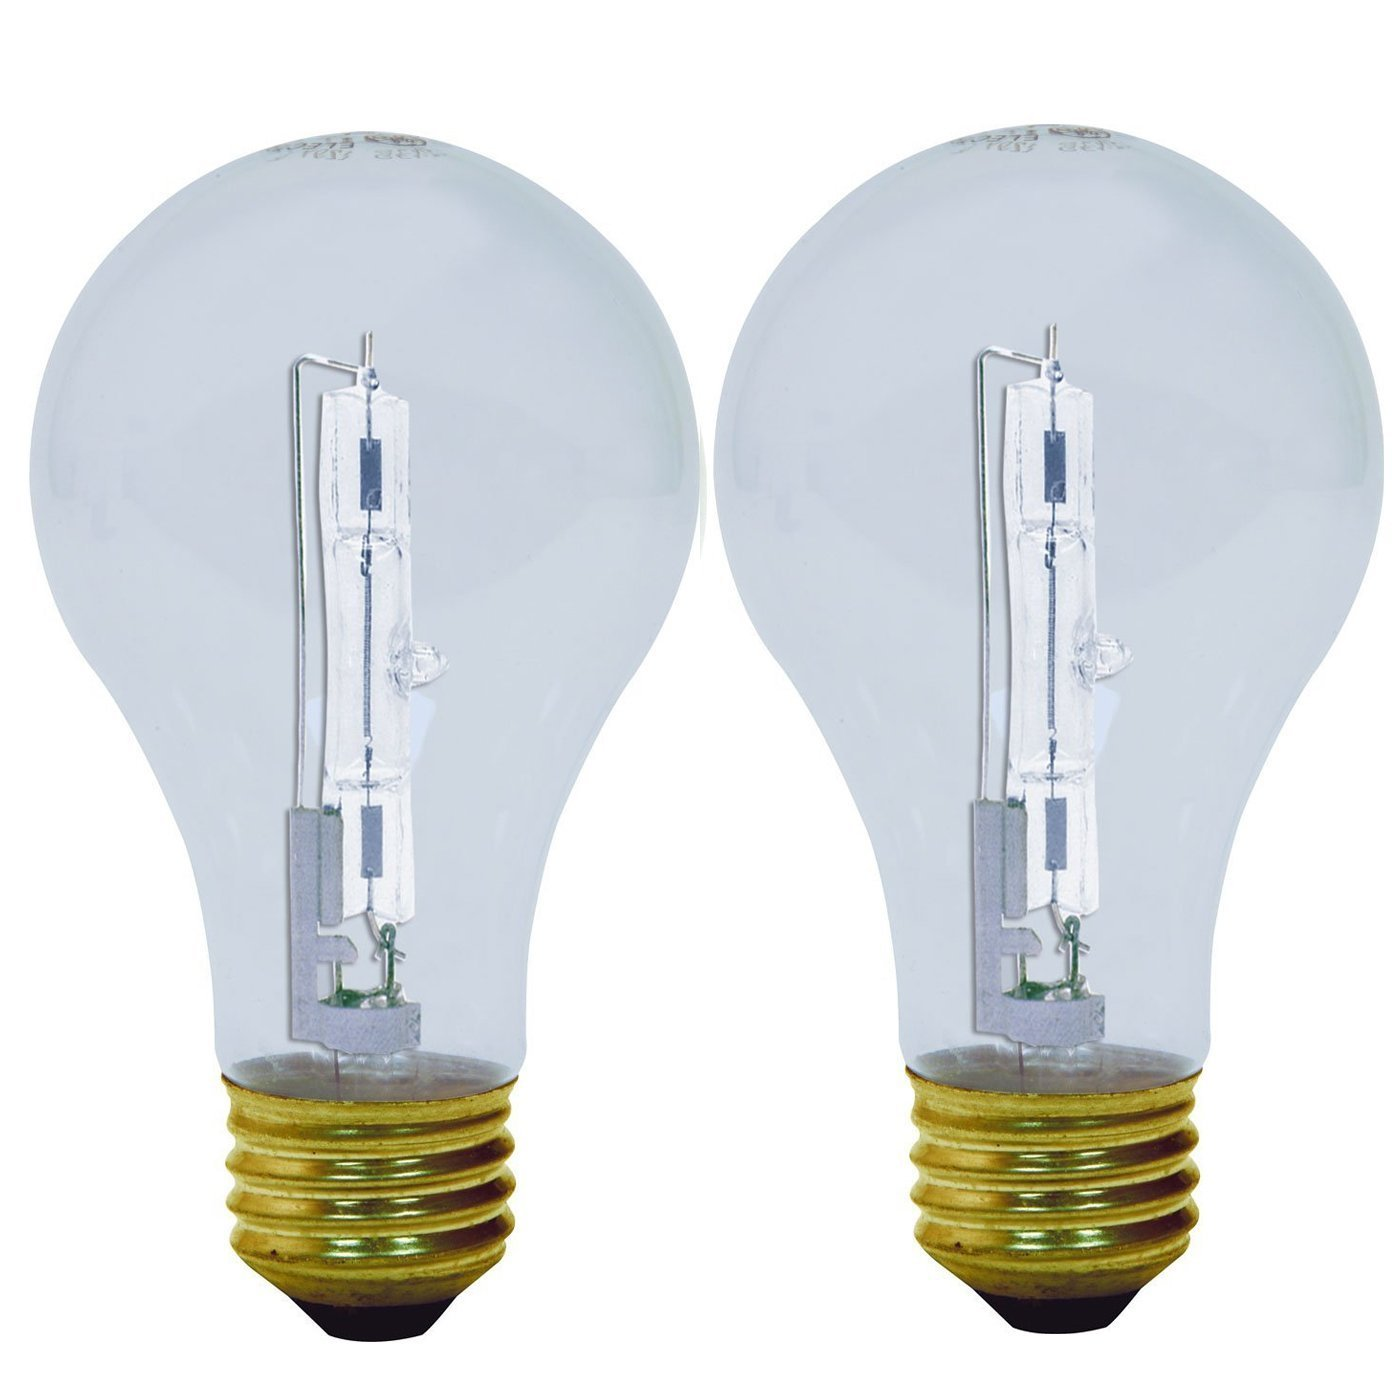 92 how many lumens is a 60 watt light bulb ge lighting 74437 energy smart cfl 15 watt 60 Efficient light bulbs